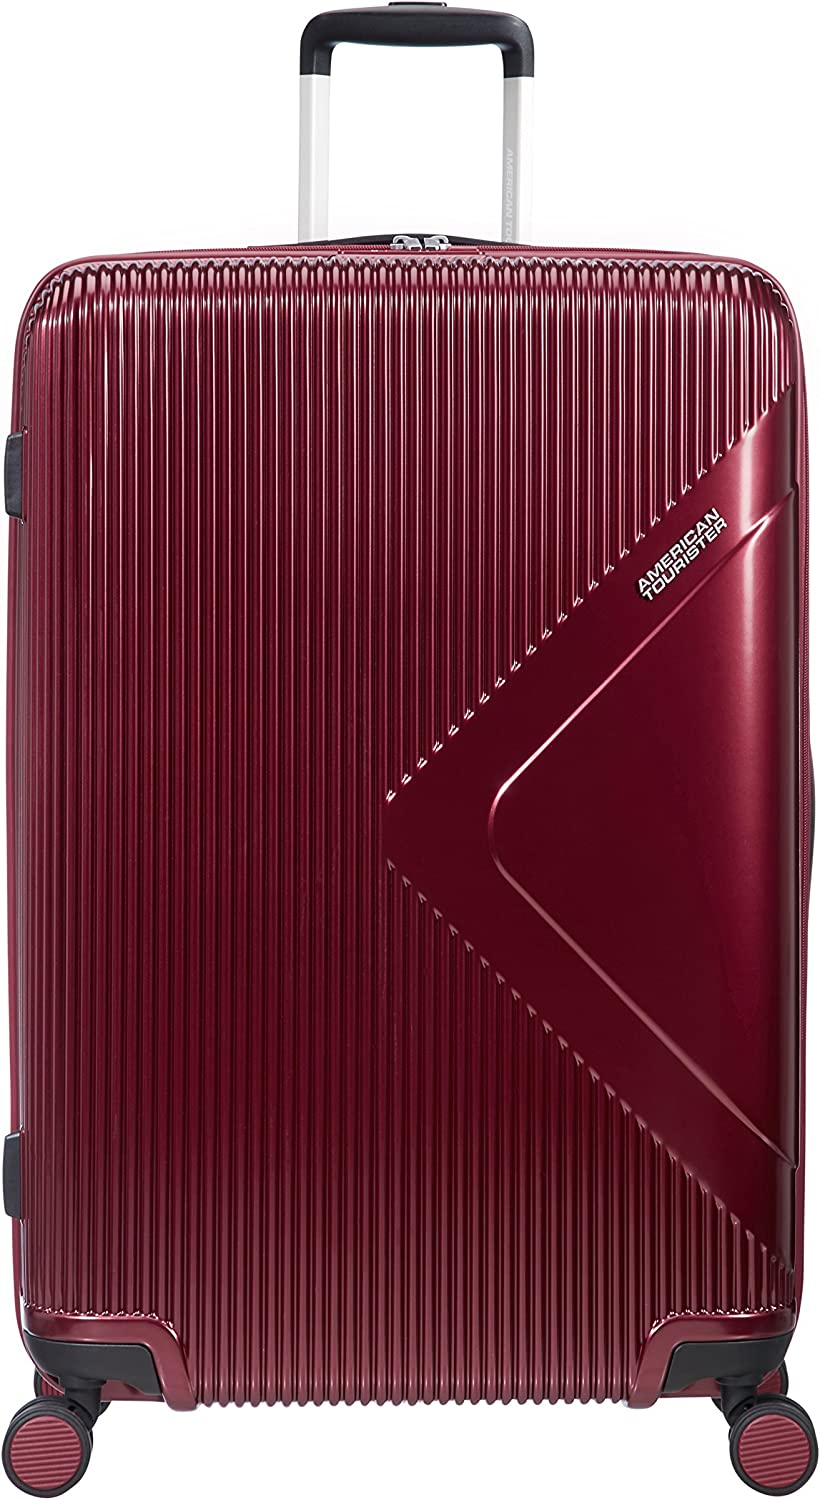 American Tourister Modern Dream - Spinner L Expandible Maleta, 77.5 cm, 114 L, Rojo (Wine Red)